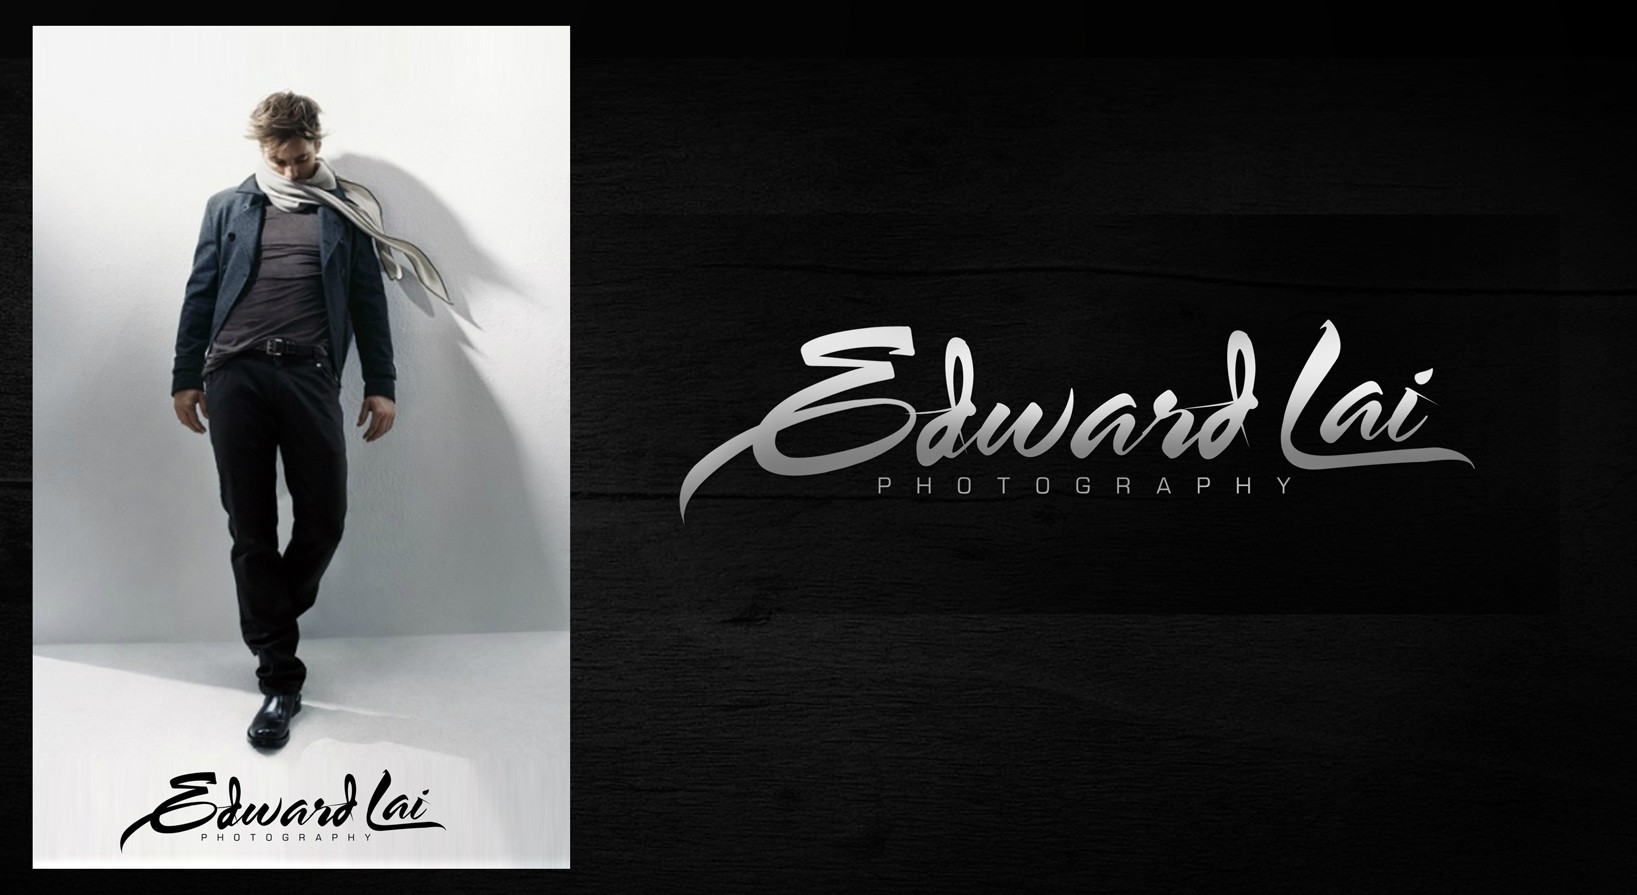 Help Edward Lai Photography with a new logo